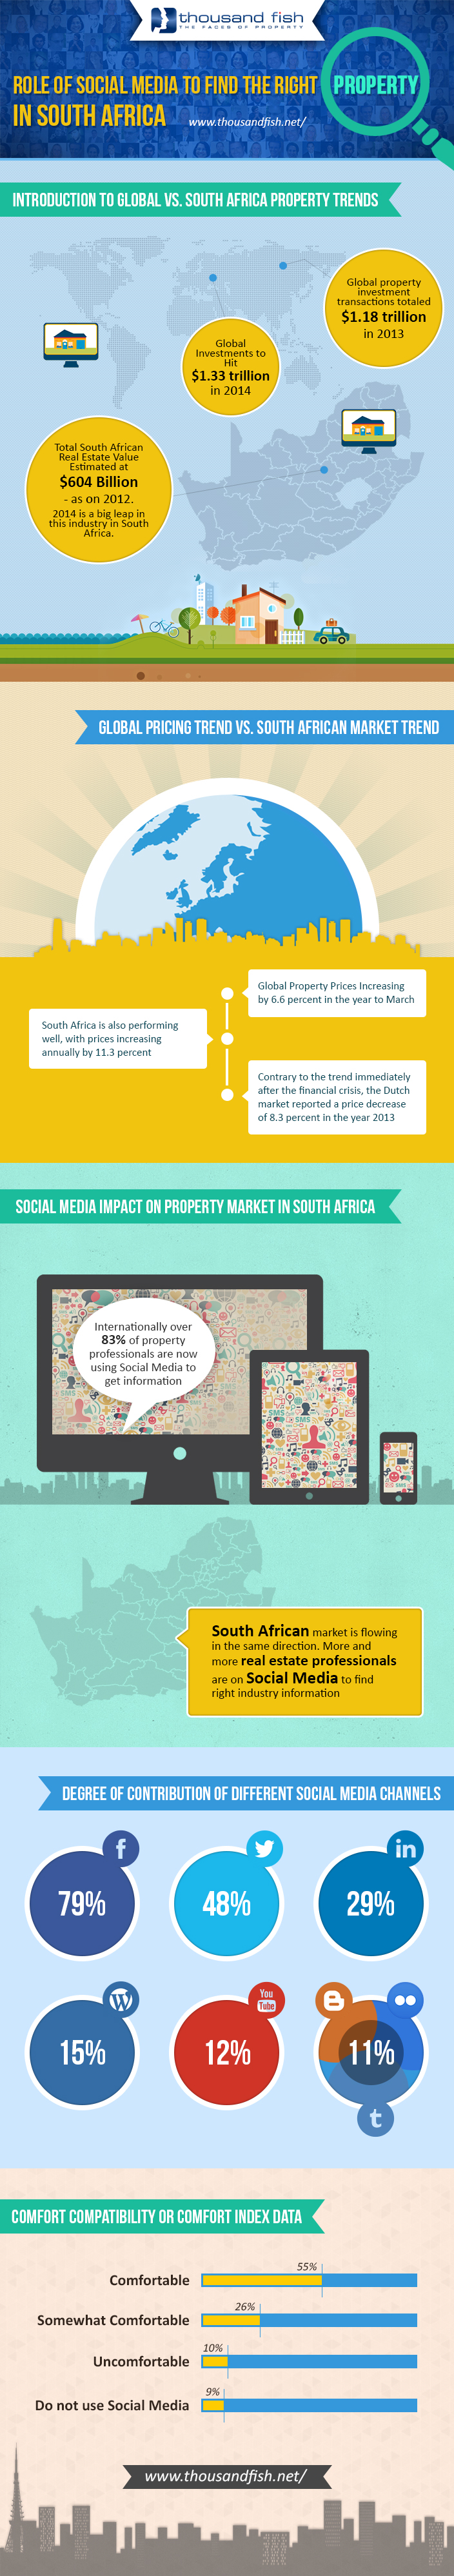 Social Media Impact On Real Estate